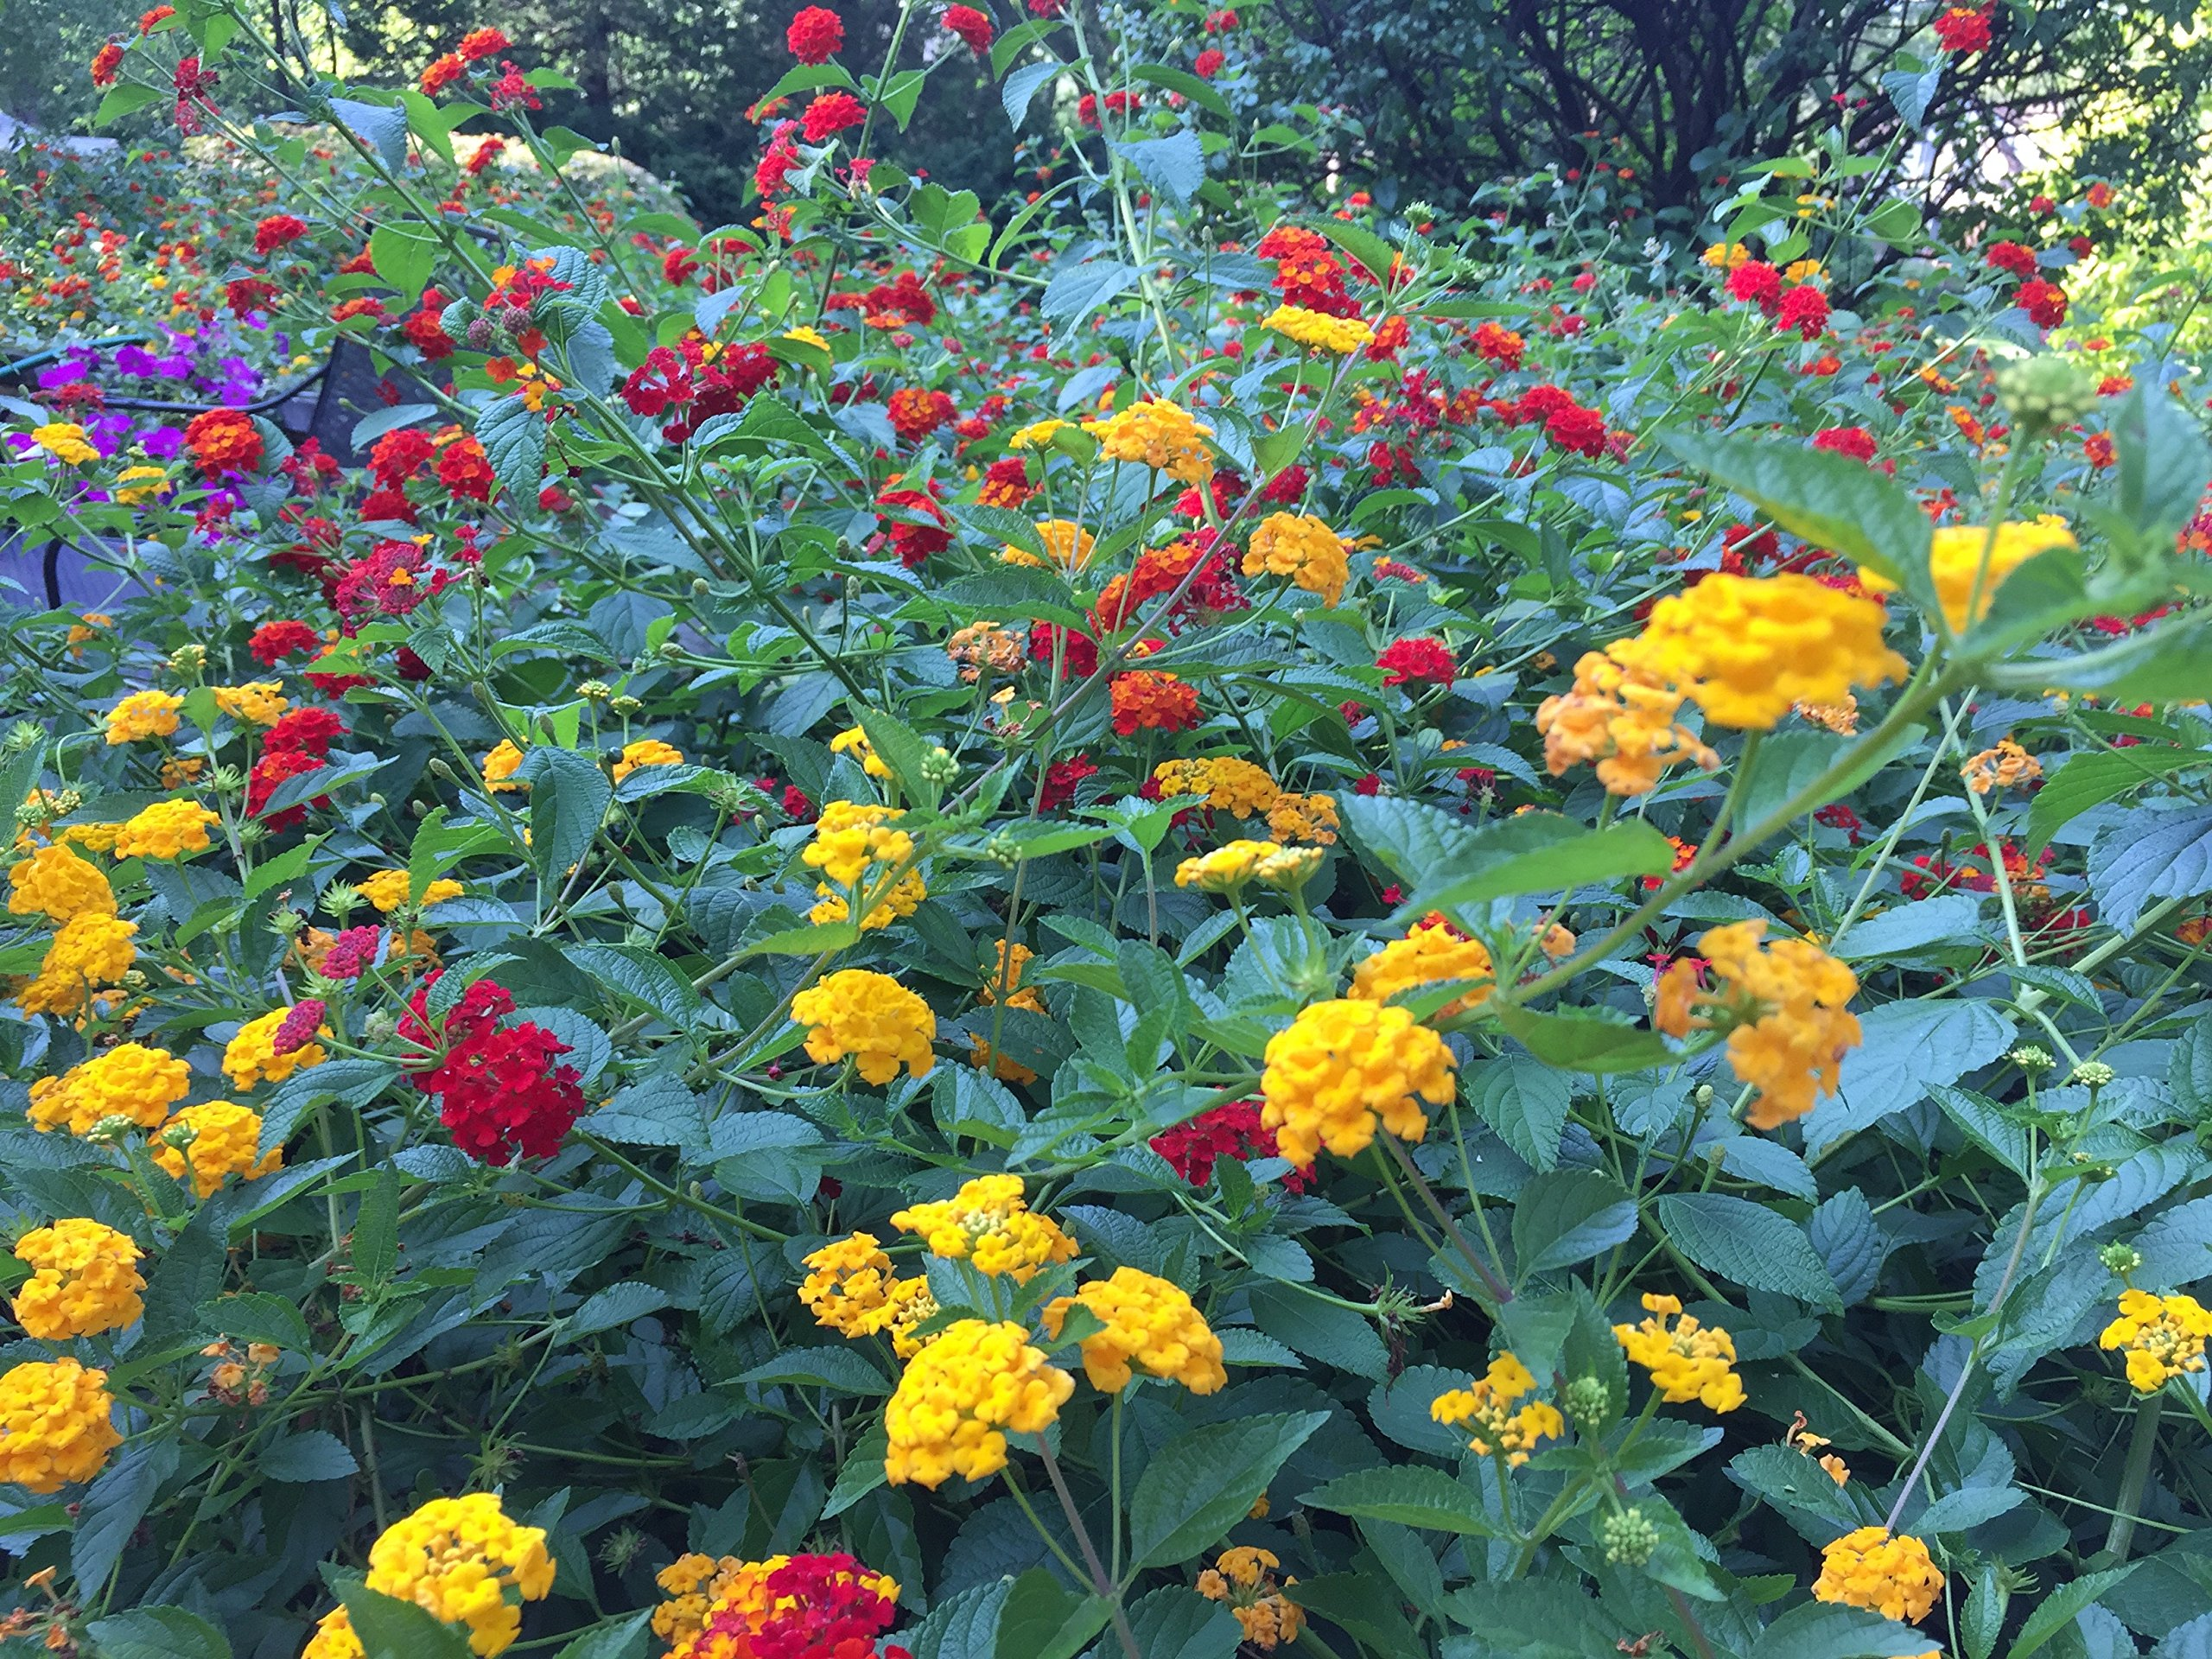 Lantana Camara Flowers - Two (2) Live Plants - Not Seeds - Natural Mosquito Repellant Garden - Attract Hummingbirds & Butterflies - Each 3'' to 7'' Tall in 4 inch Pots - Assorted Colors - PREMIUM PLANTS